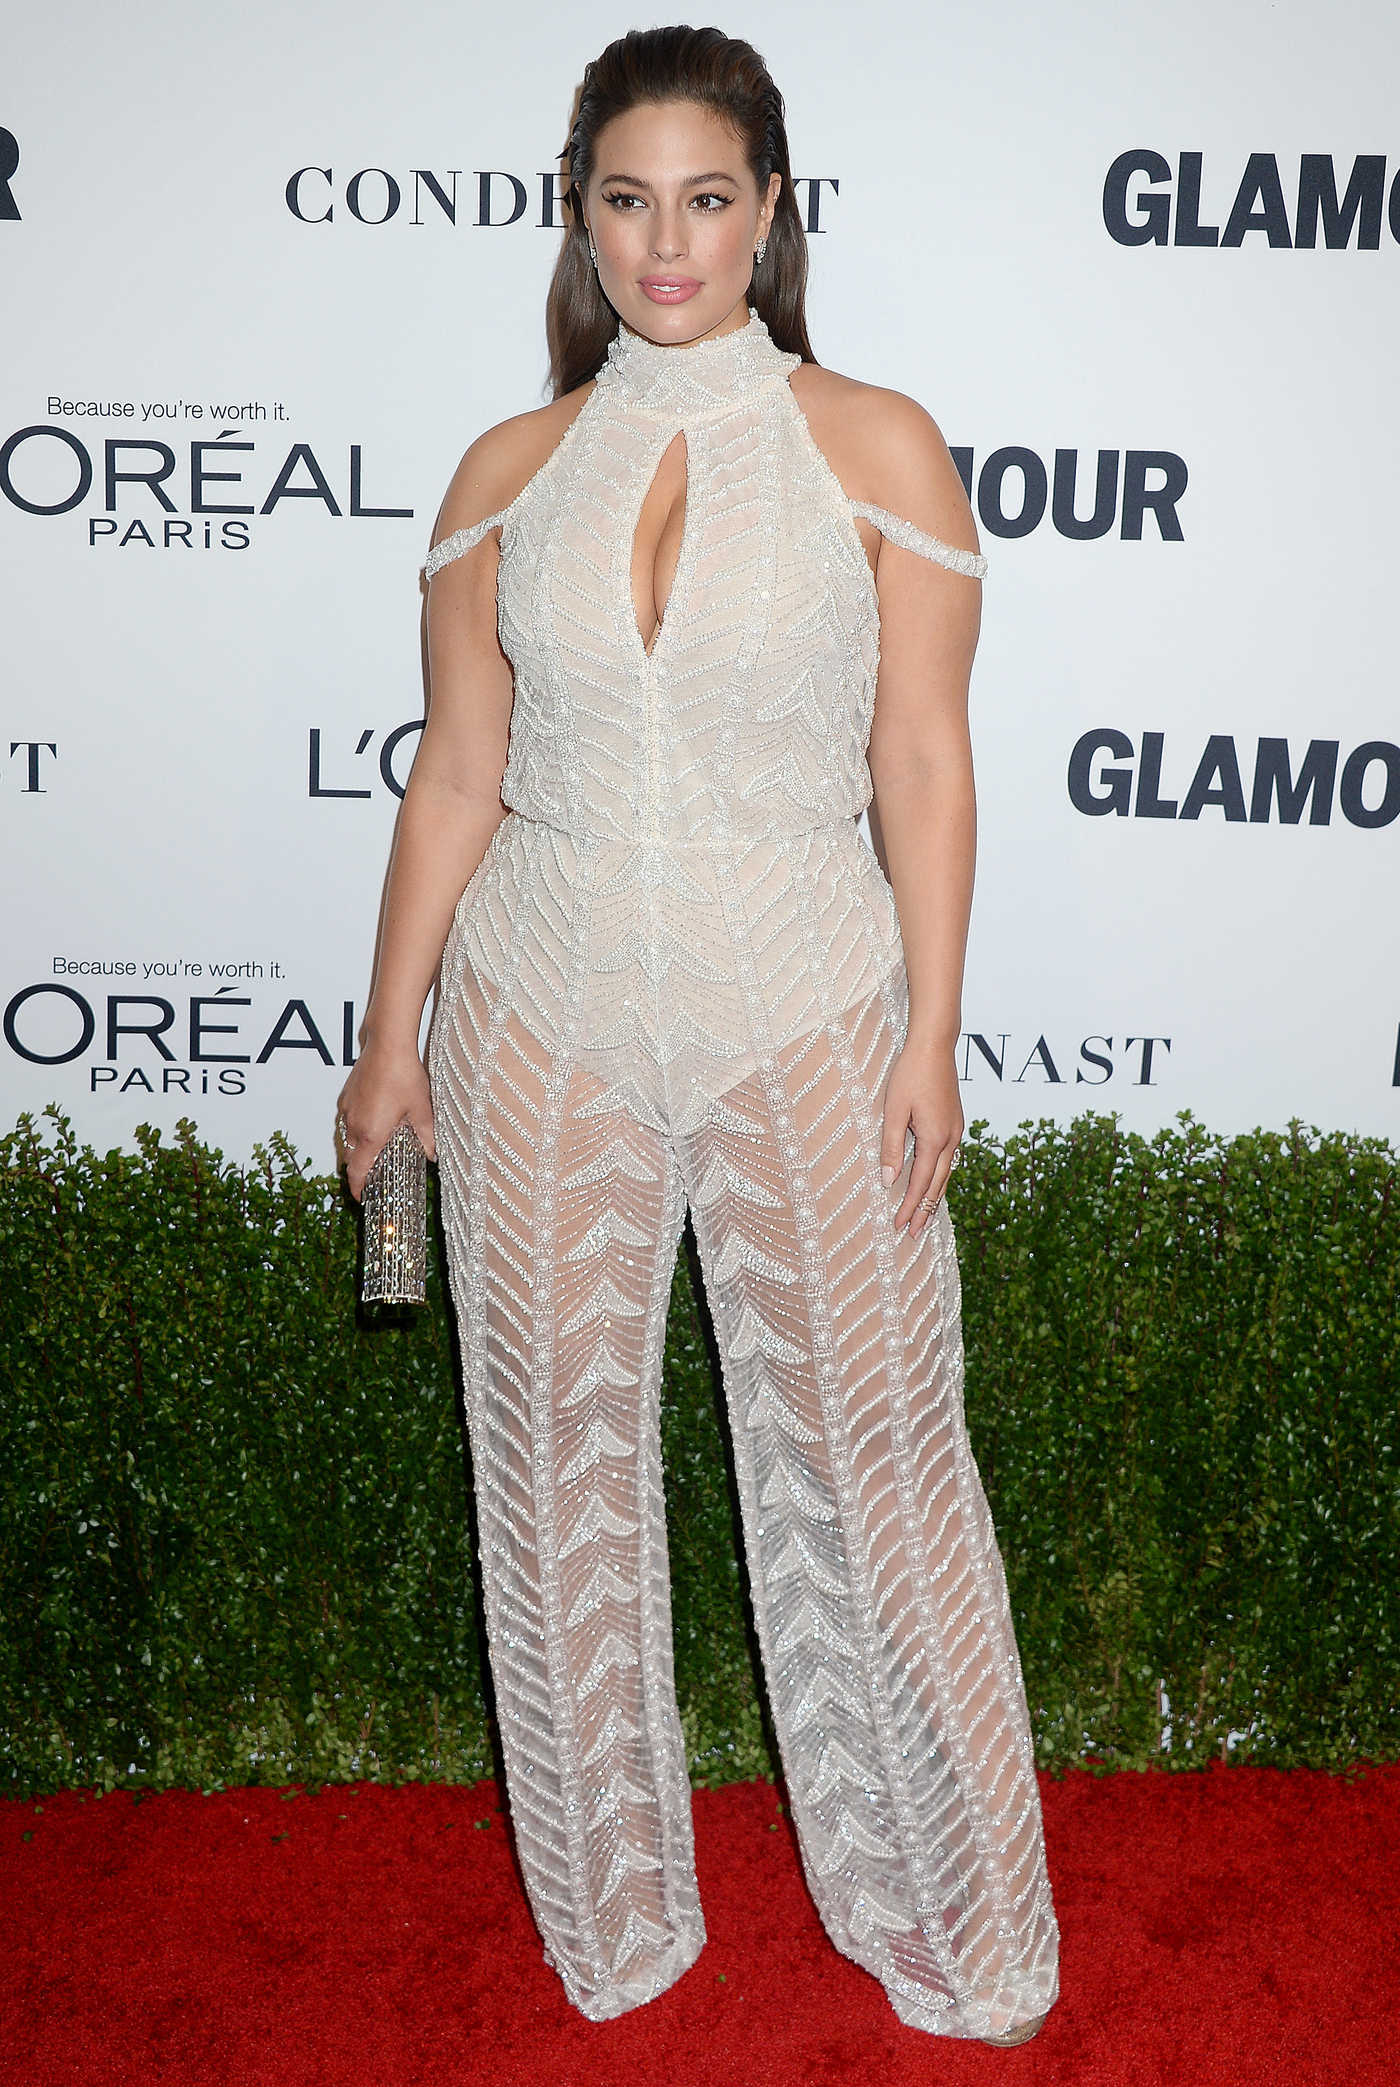 Ashley Graham at the Glamour Women of The Year Awards in Los Angeles 11/14/2016